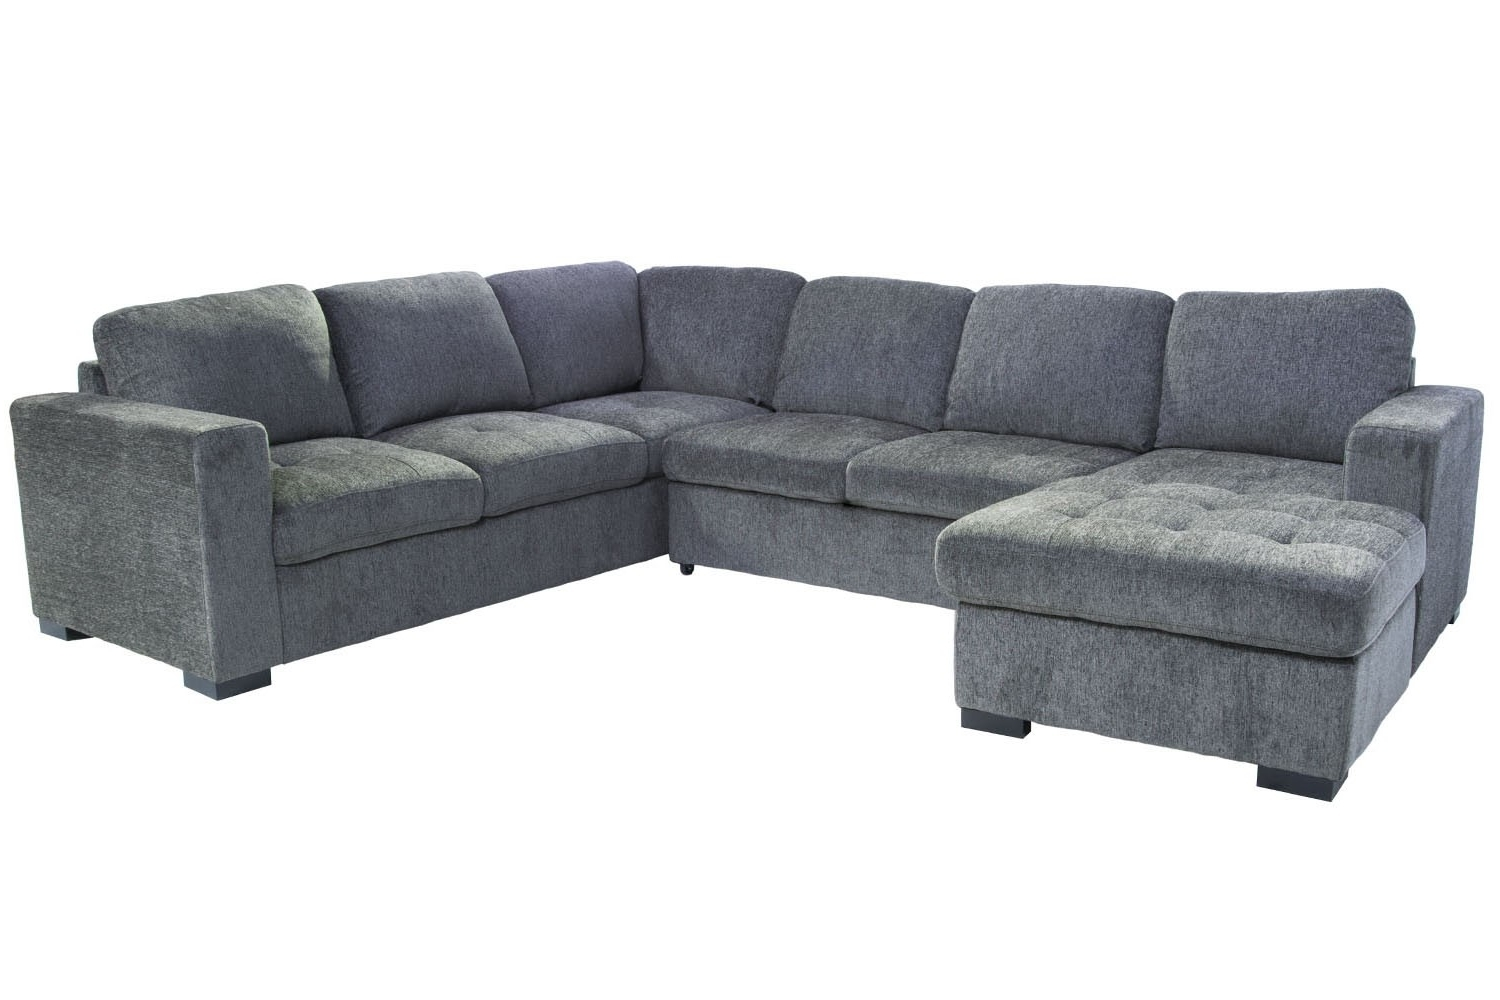 Claire 3 Piece Left Facing Chaise Sectional (View 14 of 15)